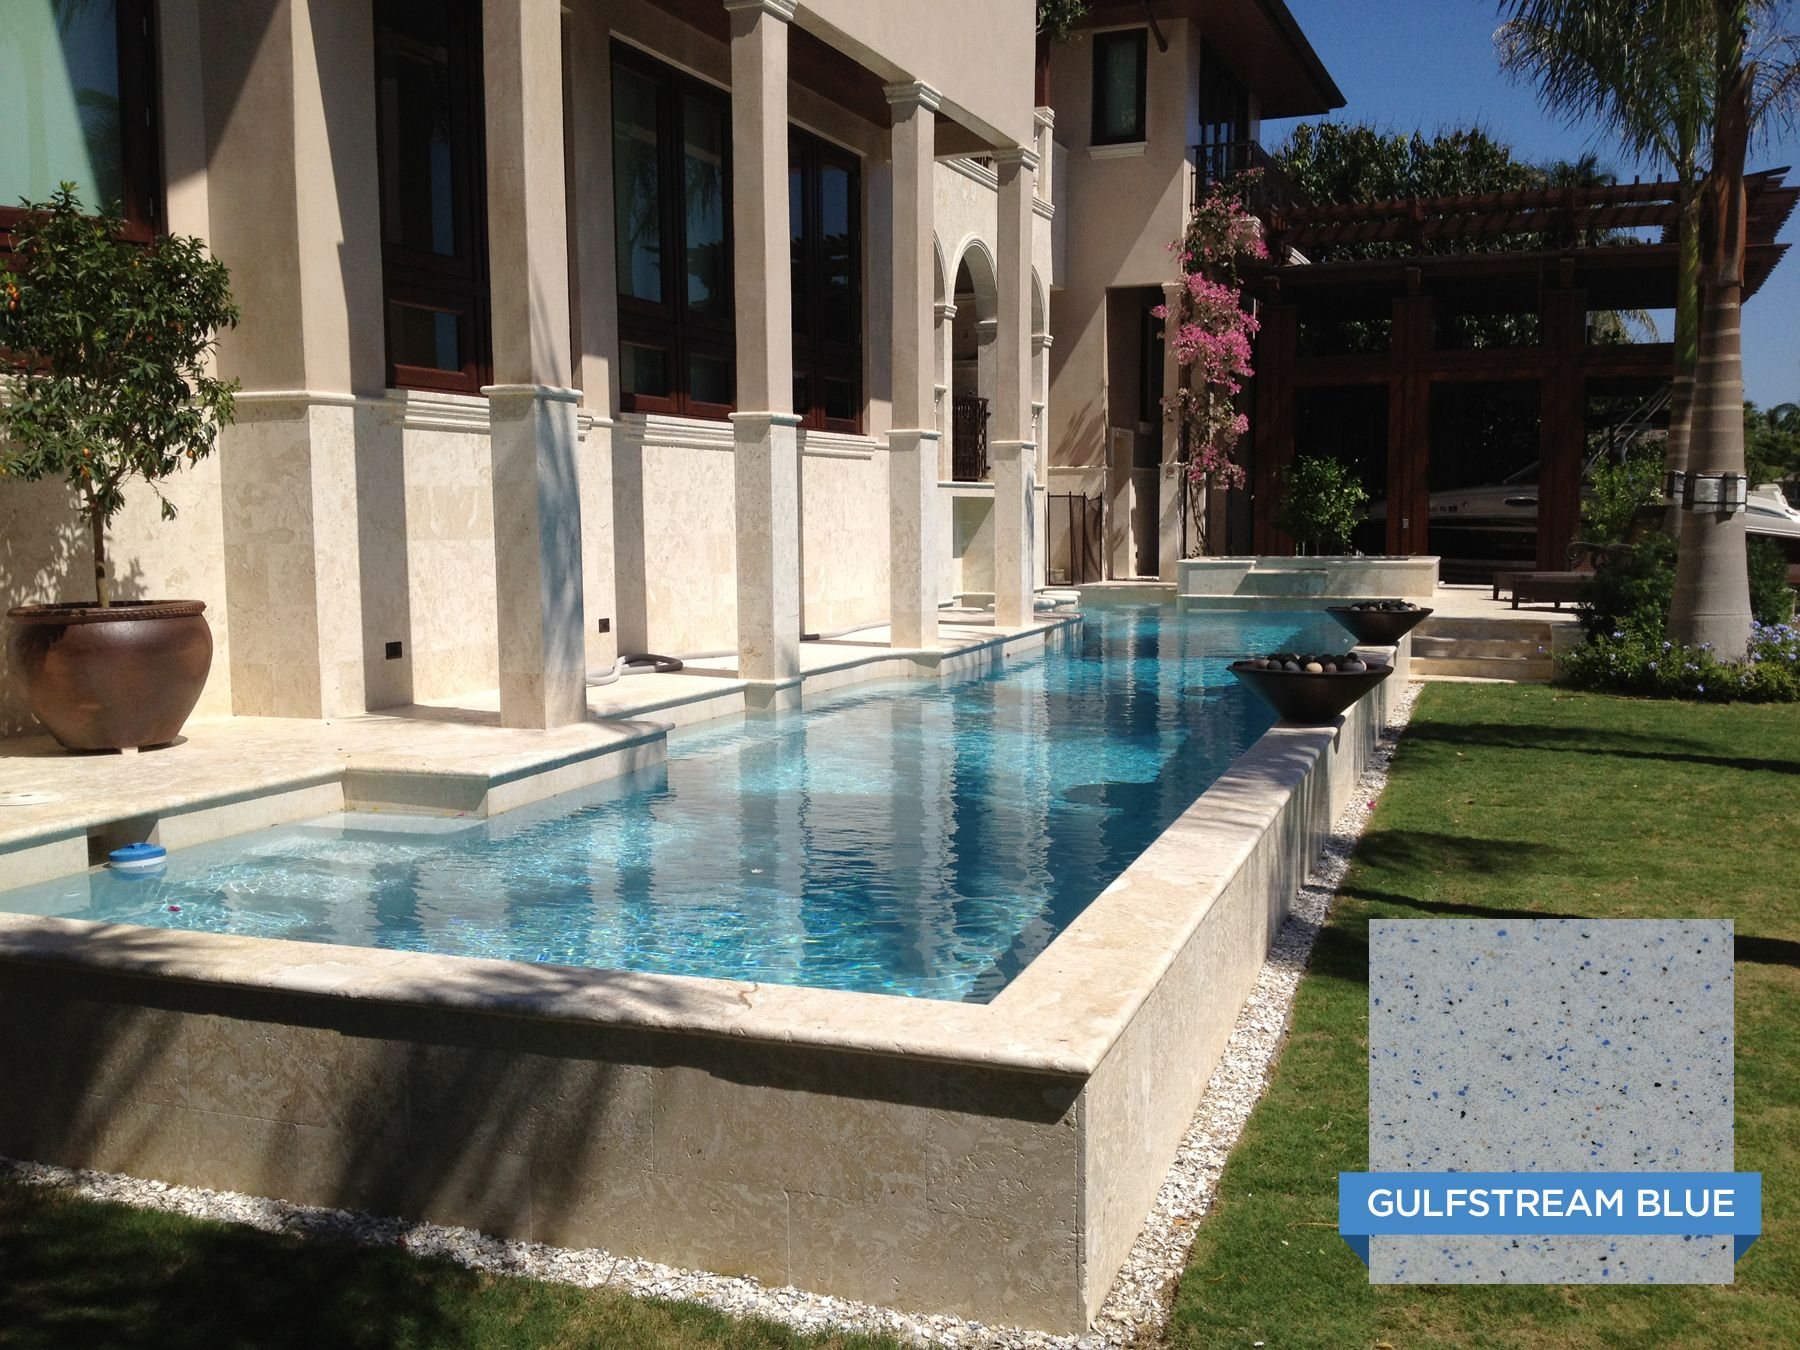 Hydrazzo Gulfstream Blue Looks So Inviting Right About Now. Serenity Pools  Living Up To Their